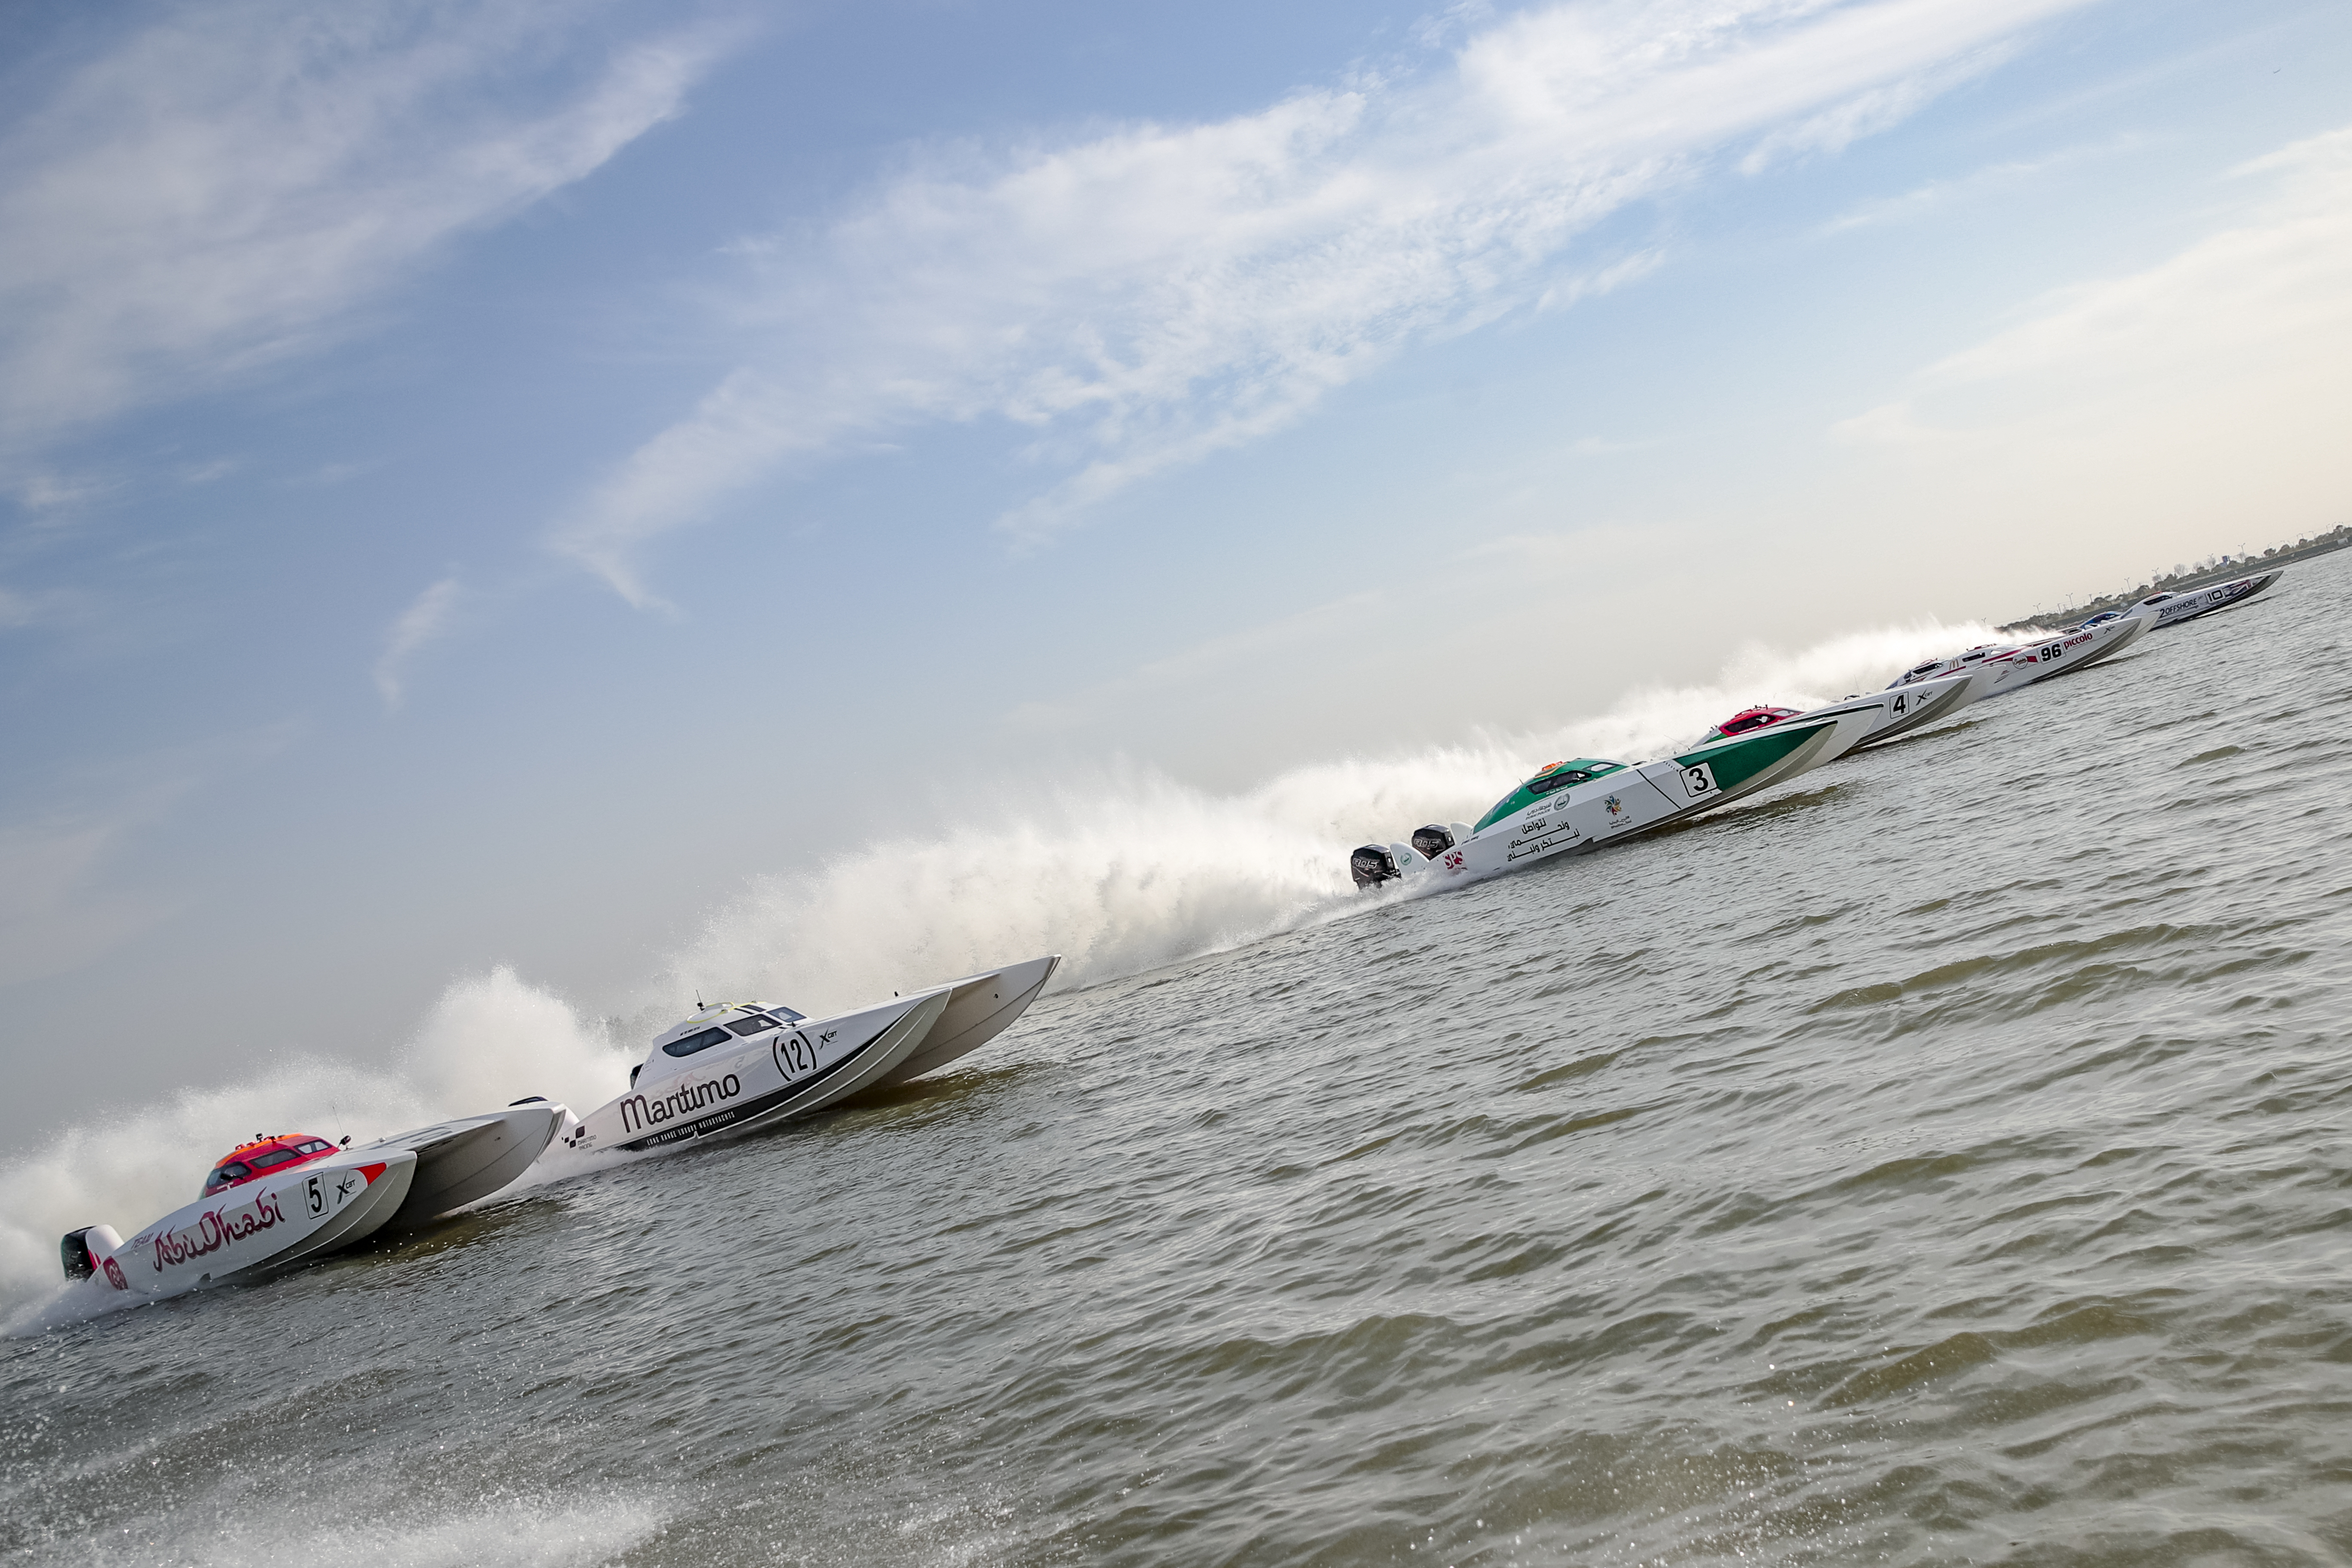 ICARUS Sports secures landmark partnership with UIM XCAT World Championship